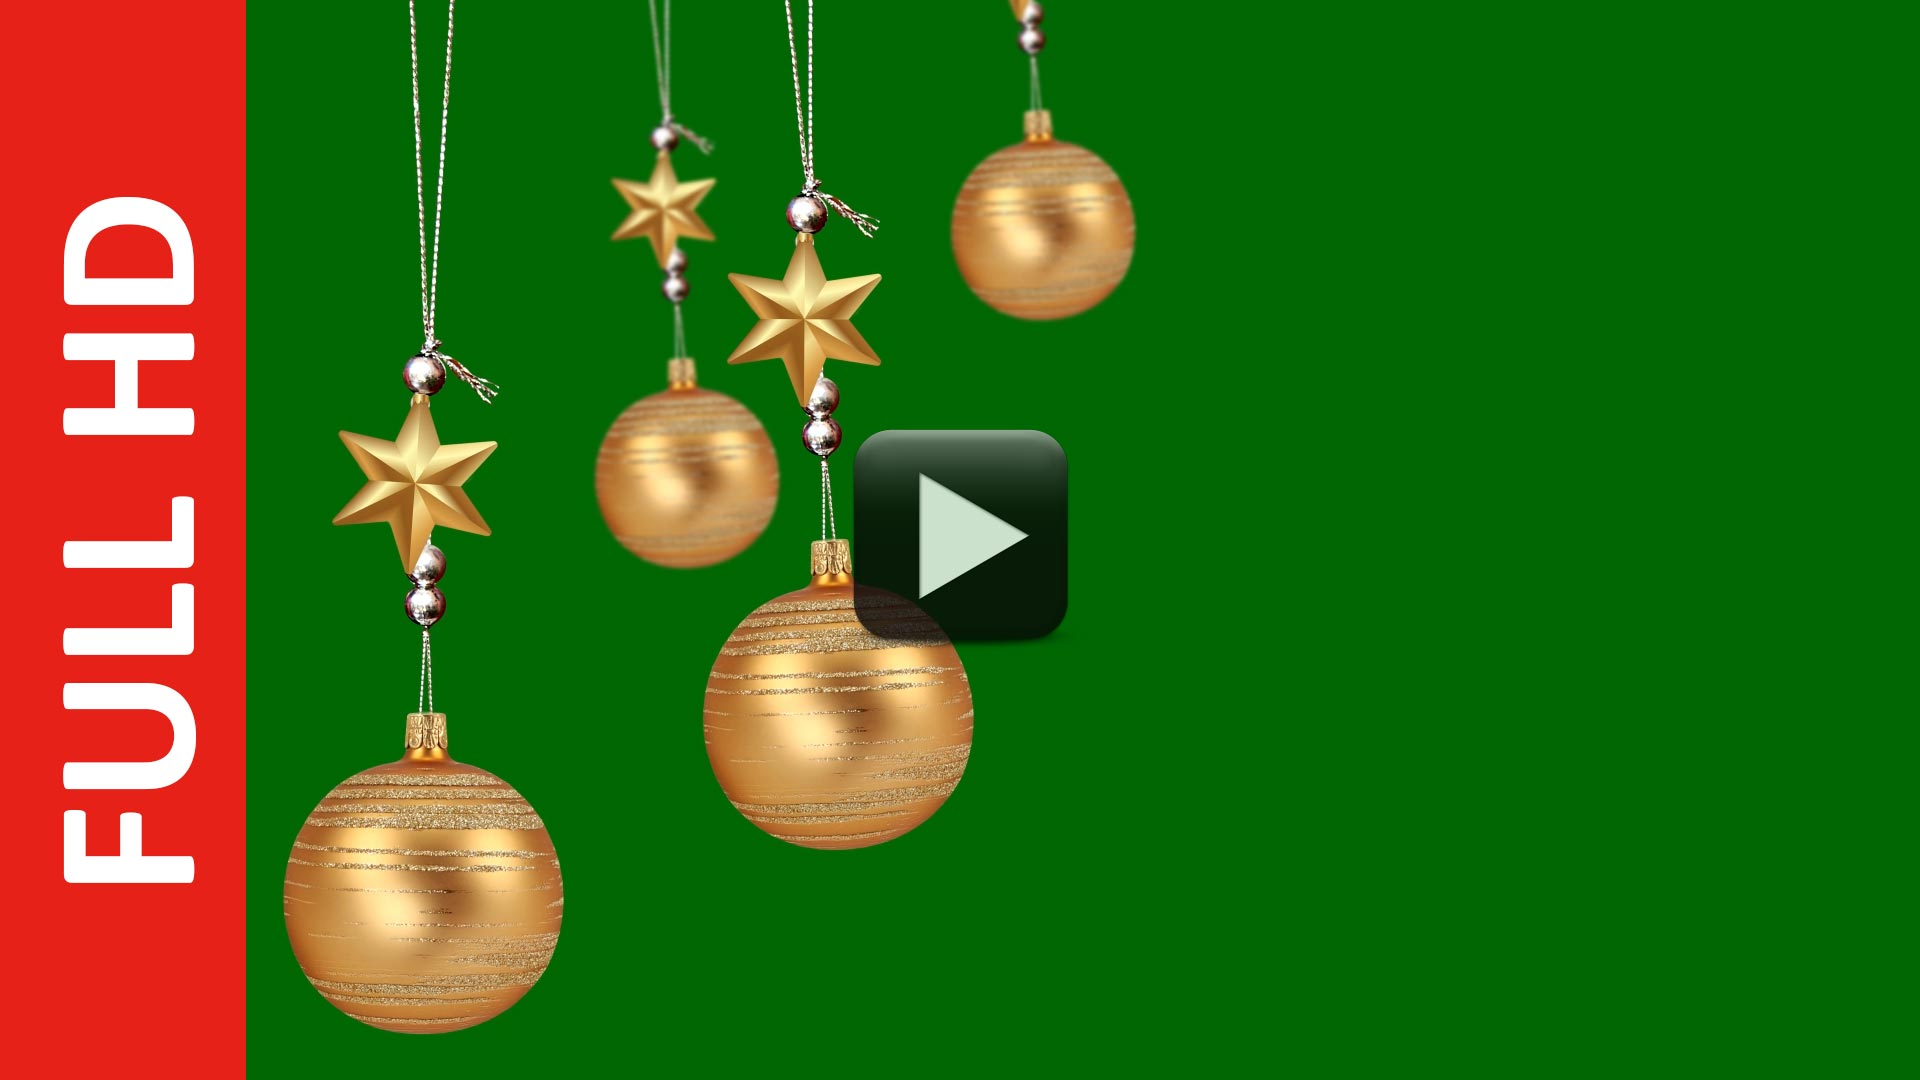 Christmas Ball Swinging Green Screen Background